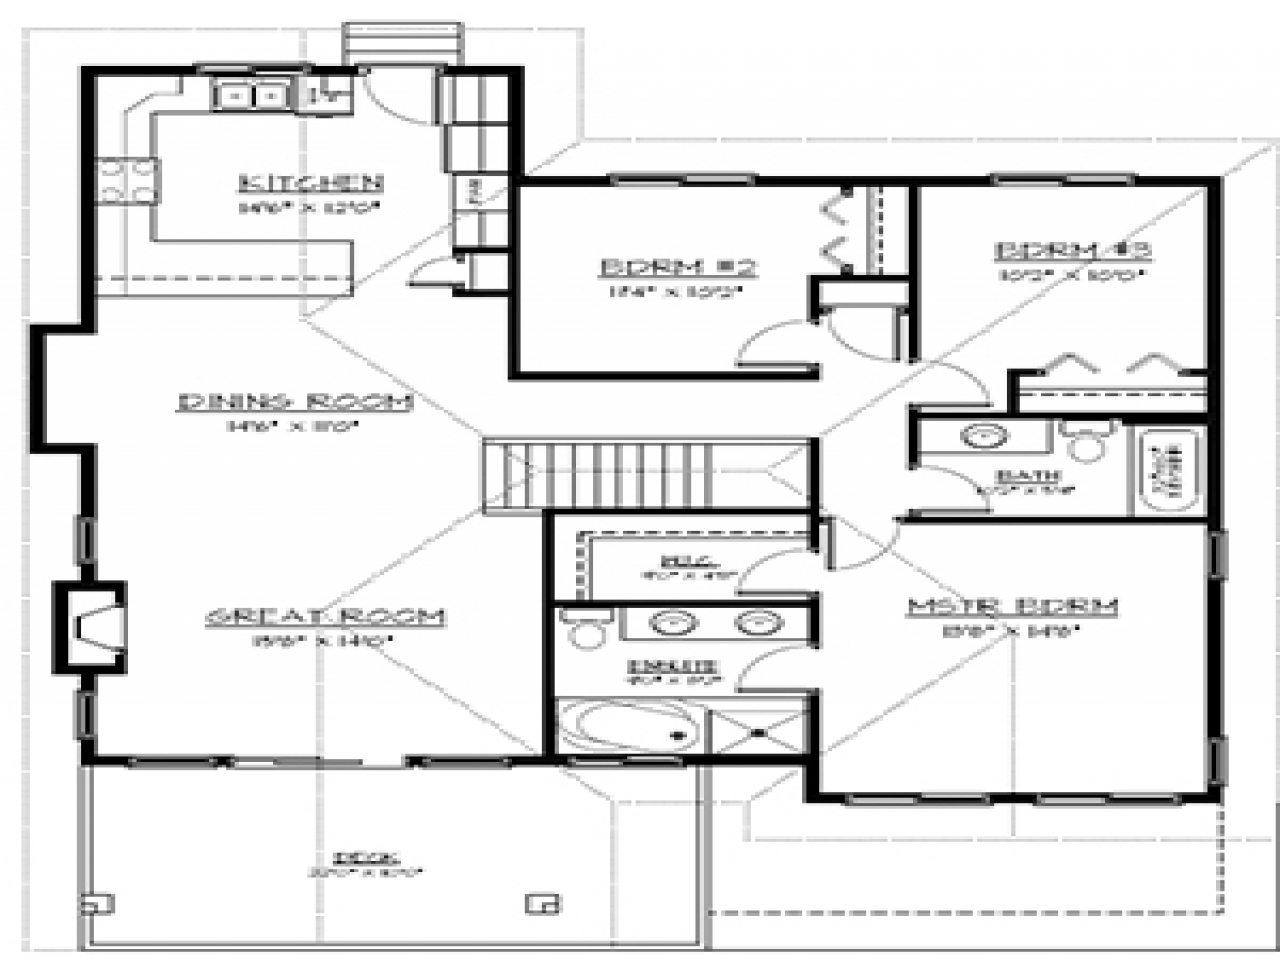 house plans with finished basement finished basement floor plans finished basement gallery basement entry house plans treesranch com 6680